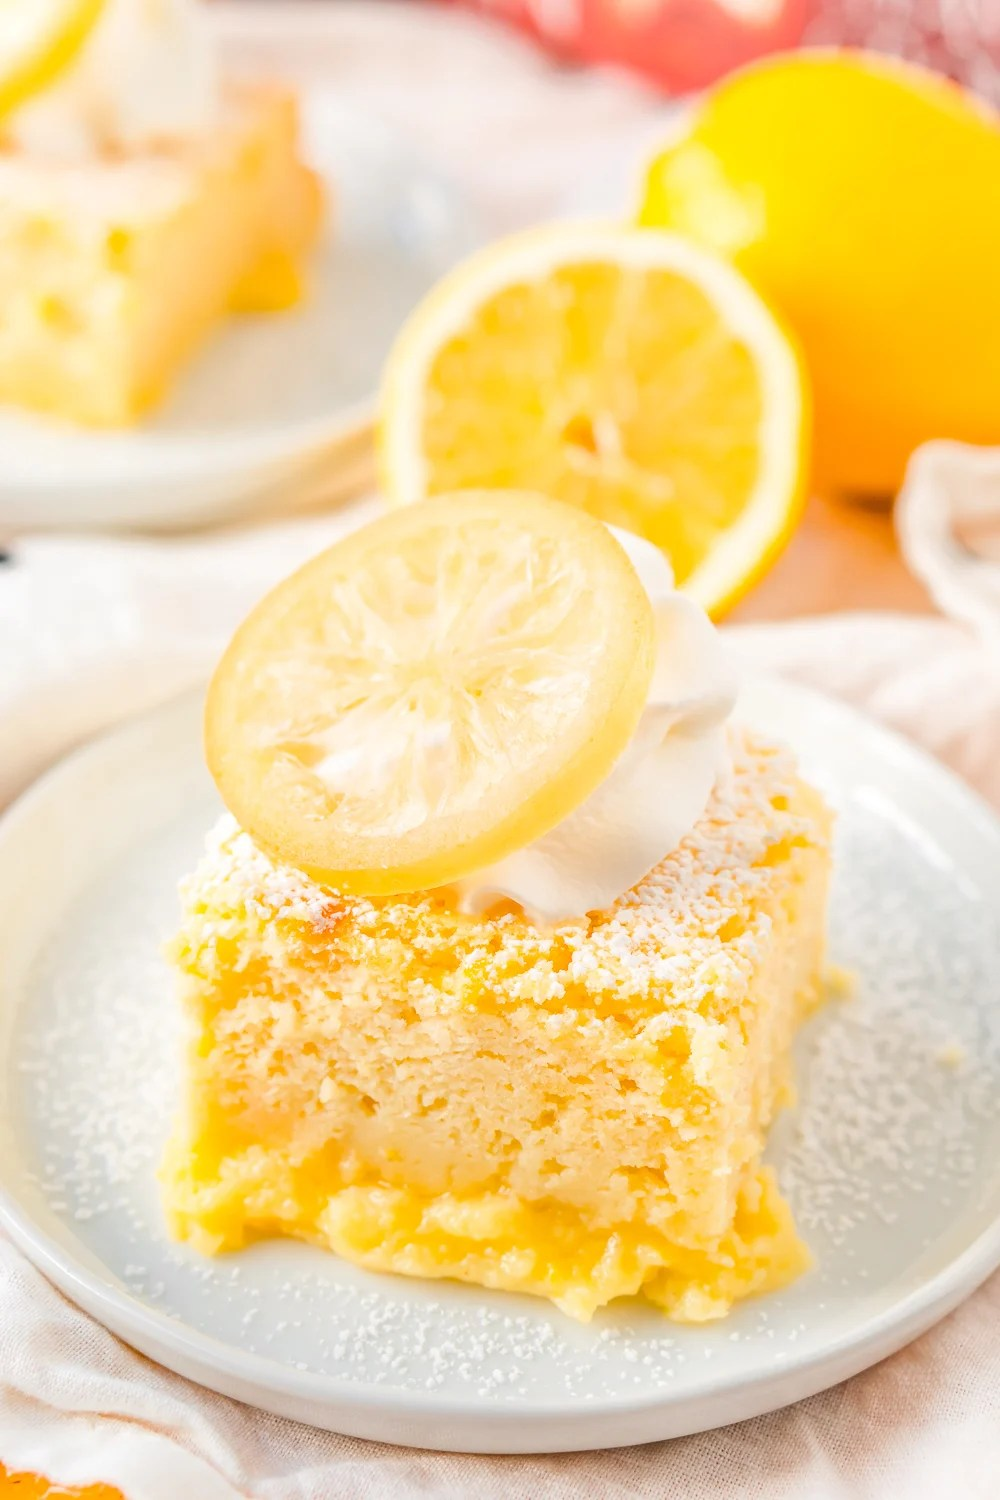 Lemon Cake on small white plate with lemon in the background.